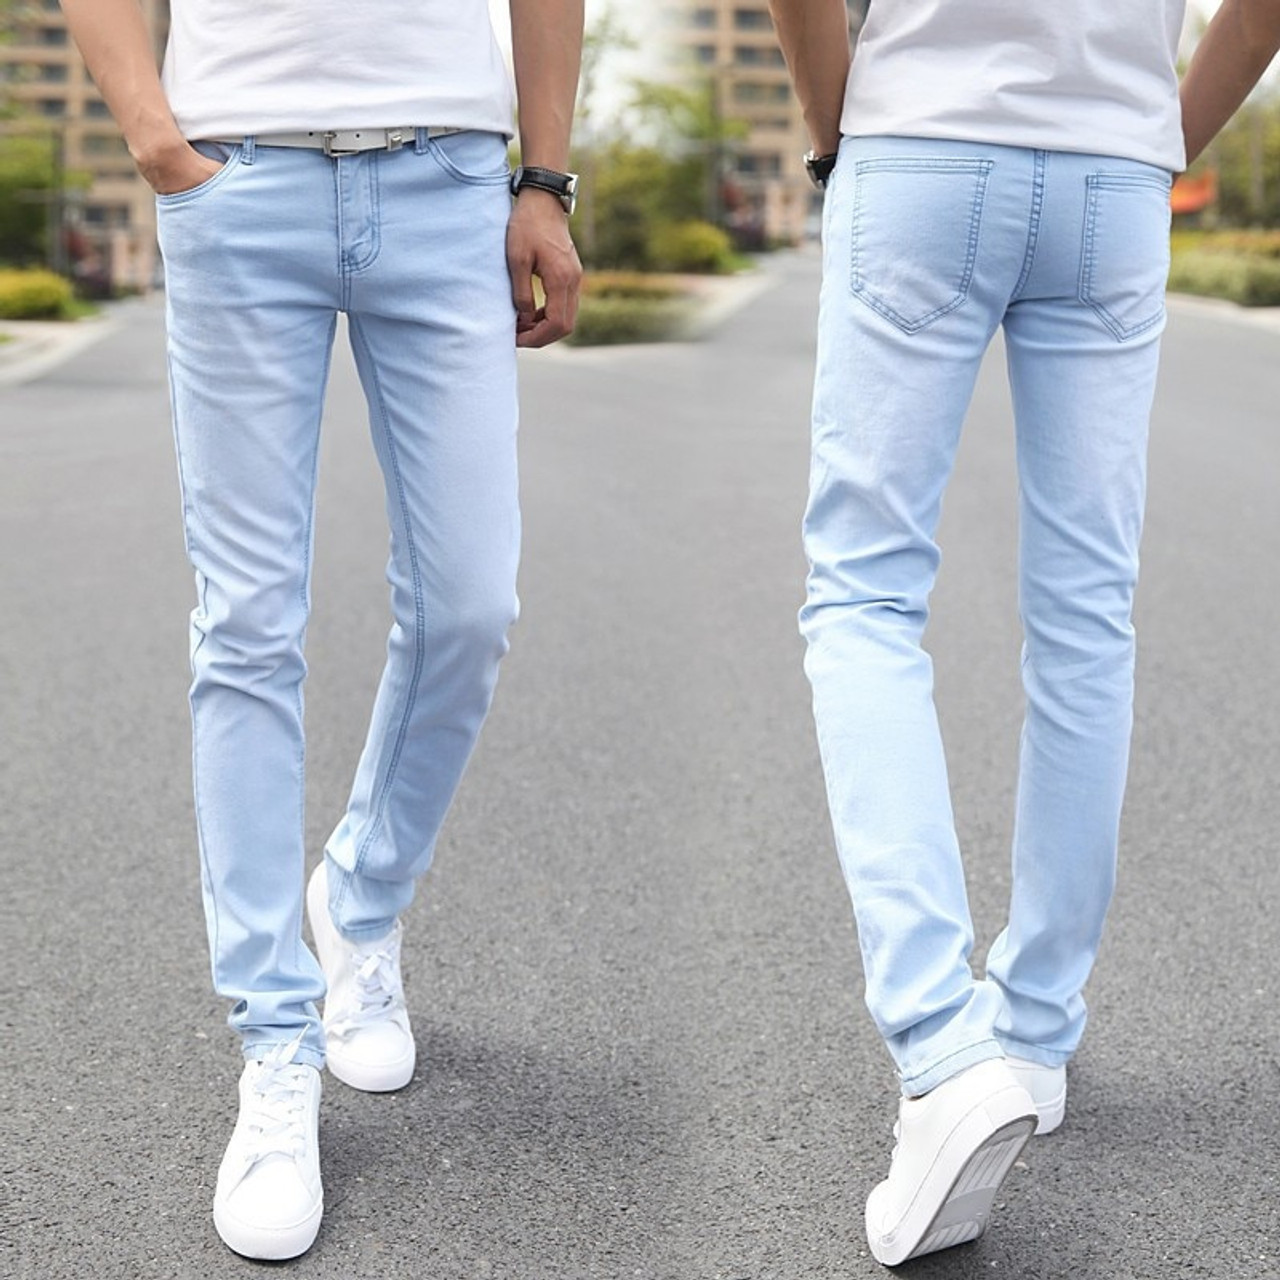 6a7edce16298 ... Mens Slim Fit jeans Men Stretch Fashion Skinny Jeans Trousers Male  Super Elastic Casual Straight Blue ...